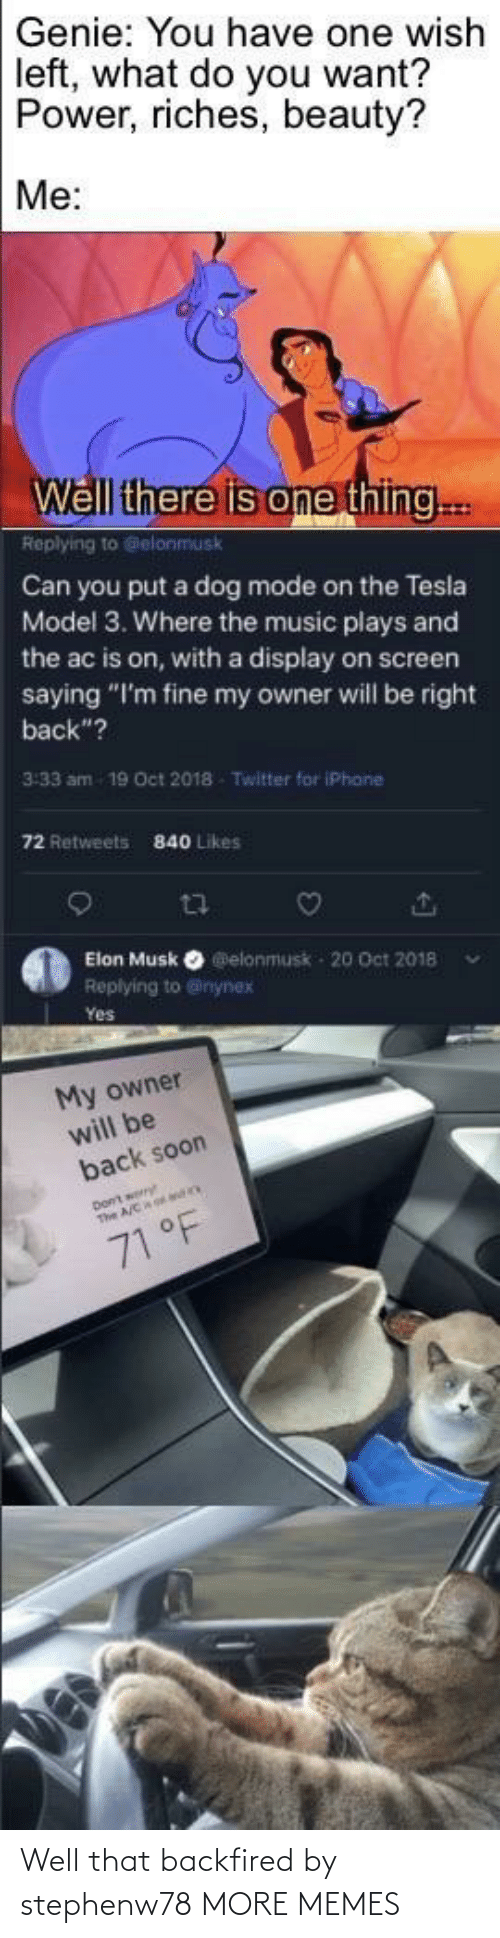 "what do: Genie: You have one wish  left, what do you want?  Power, riches, beauty?  Me:  Well there is one thing..  Replying to Gelonmusk  Can you put a dog mode on the Tesla  Model 3. Where the music plays and  the ac is on, with a display on screen  saying ""I'm fine my owner will be right  back""?  3:33 am  19 Oct 2018  Twitter for iPhane  72 Retweets  840 Likes  Elon Musk O elonmusk - 20 Oct 2018  Replying to @inynex  Yes  My owner  will be  back soon  71 °F Well that backfired by stephenw78 MORE MEMES"